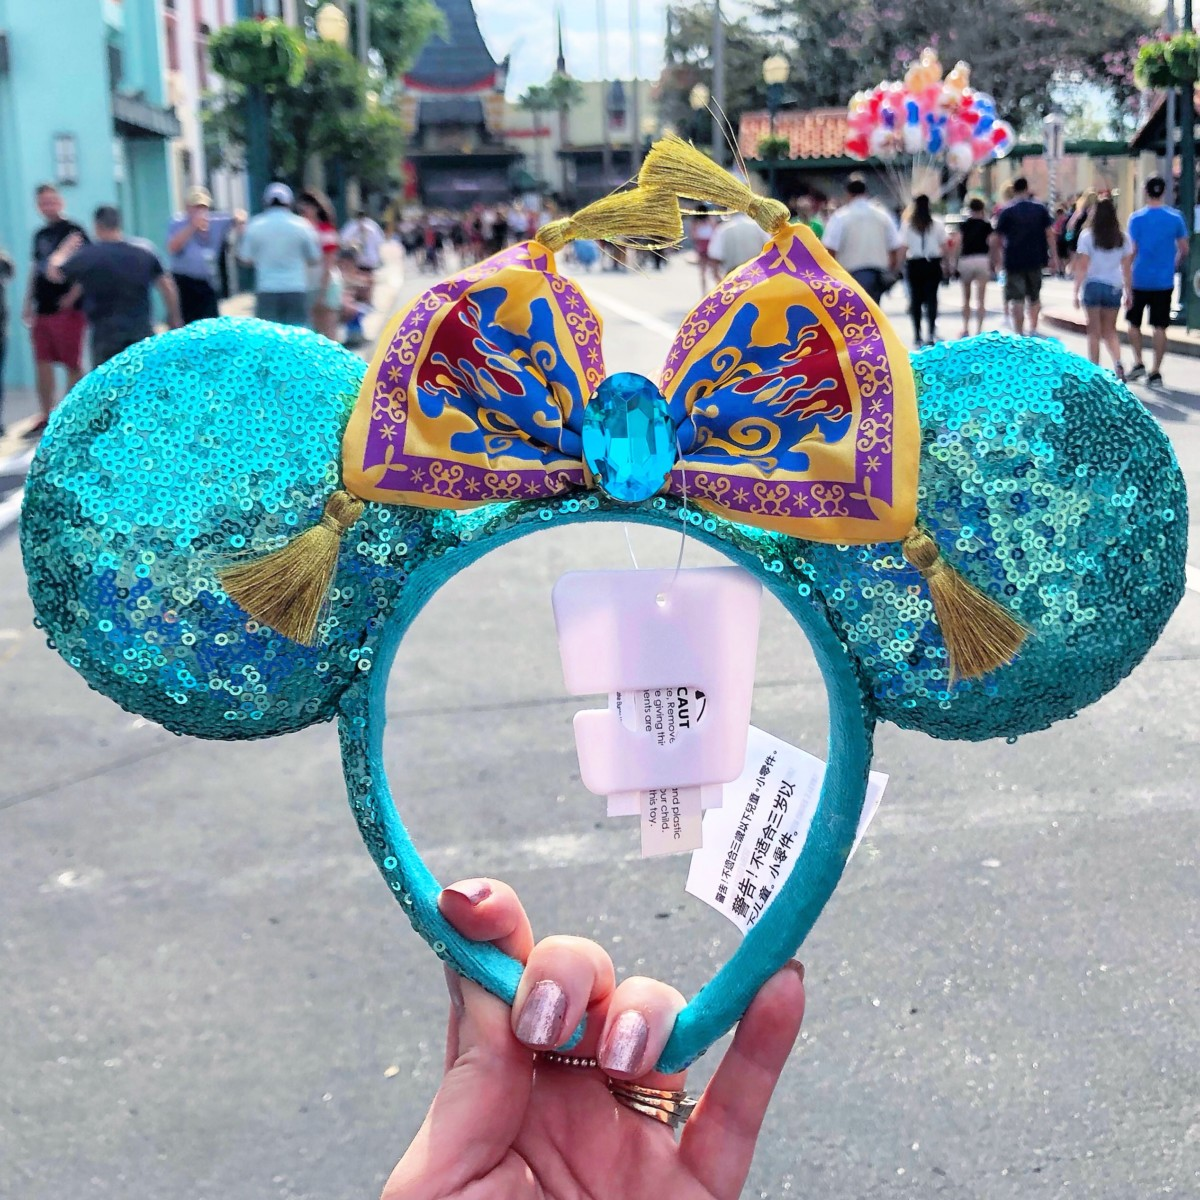 Brand New Minnie ears any collector will love #disneystyle 2